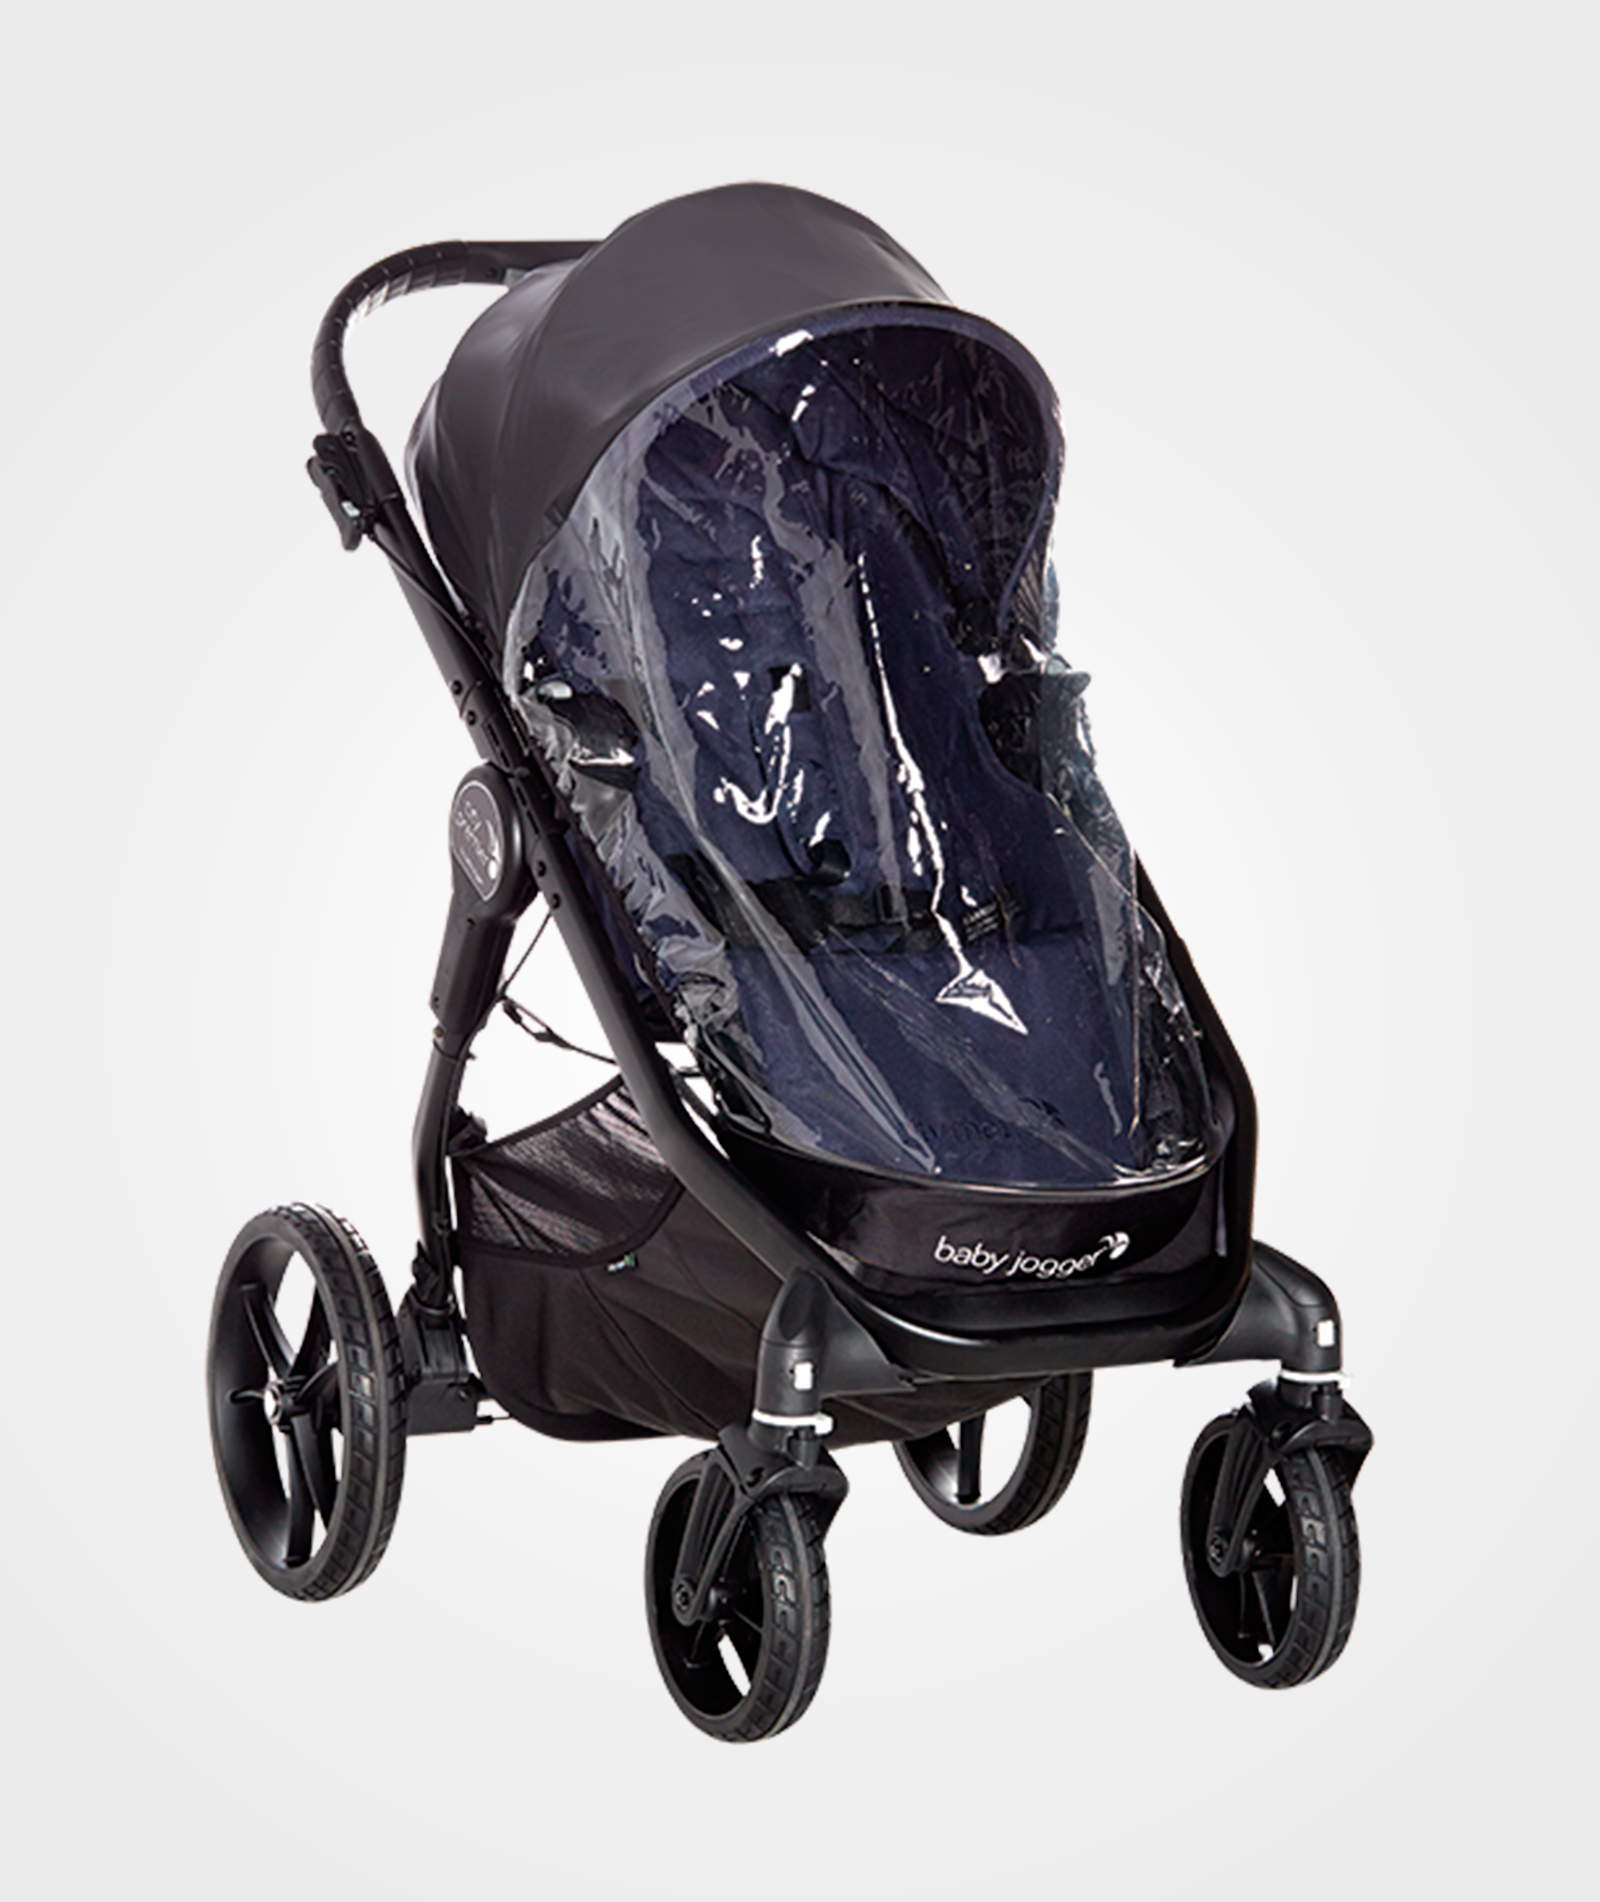 Baby jogger Baby jogger, weather shield city premier  - cover, 9 stk. på lager på pixizoo